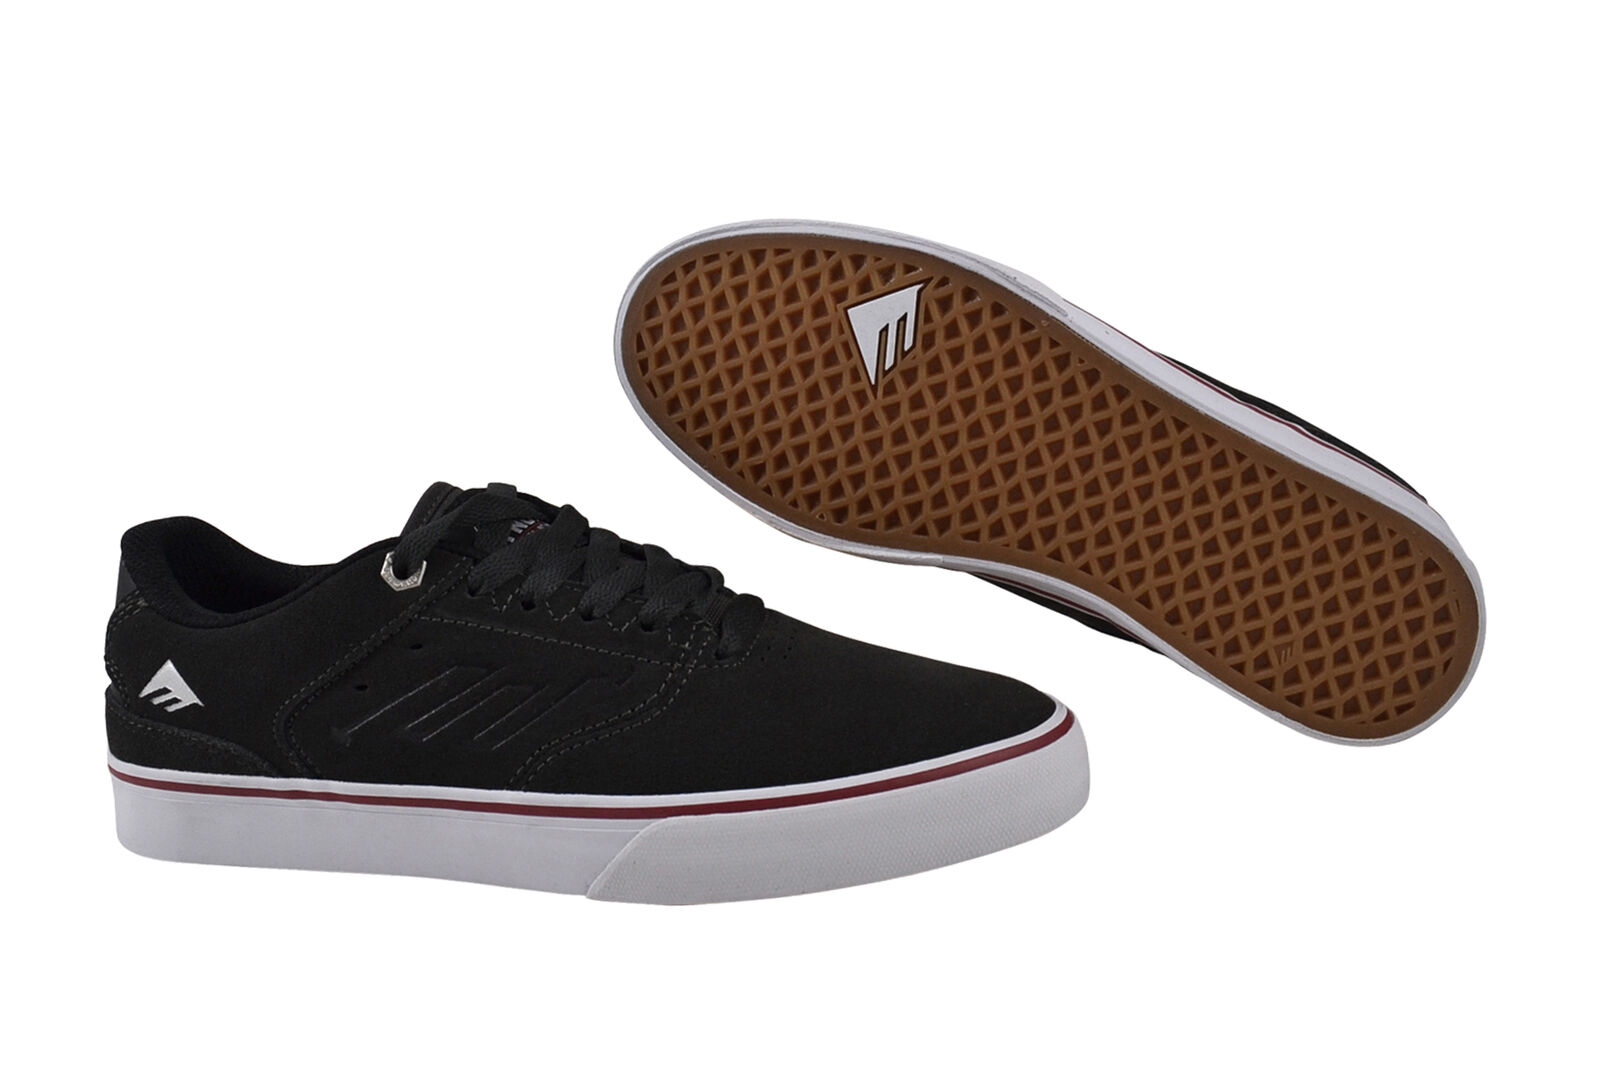 Emerica The Reynolds Low Vulc X Indy dark grey Sneaker/Schuhe grau